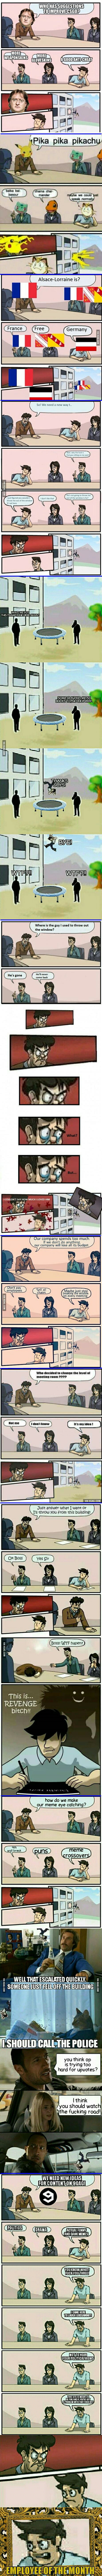 A Collection Of Special Boardroom Suggestion Memes Enjoy 9gag